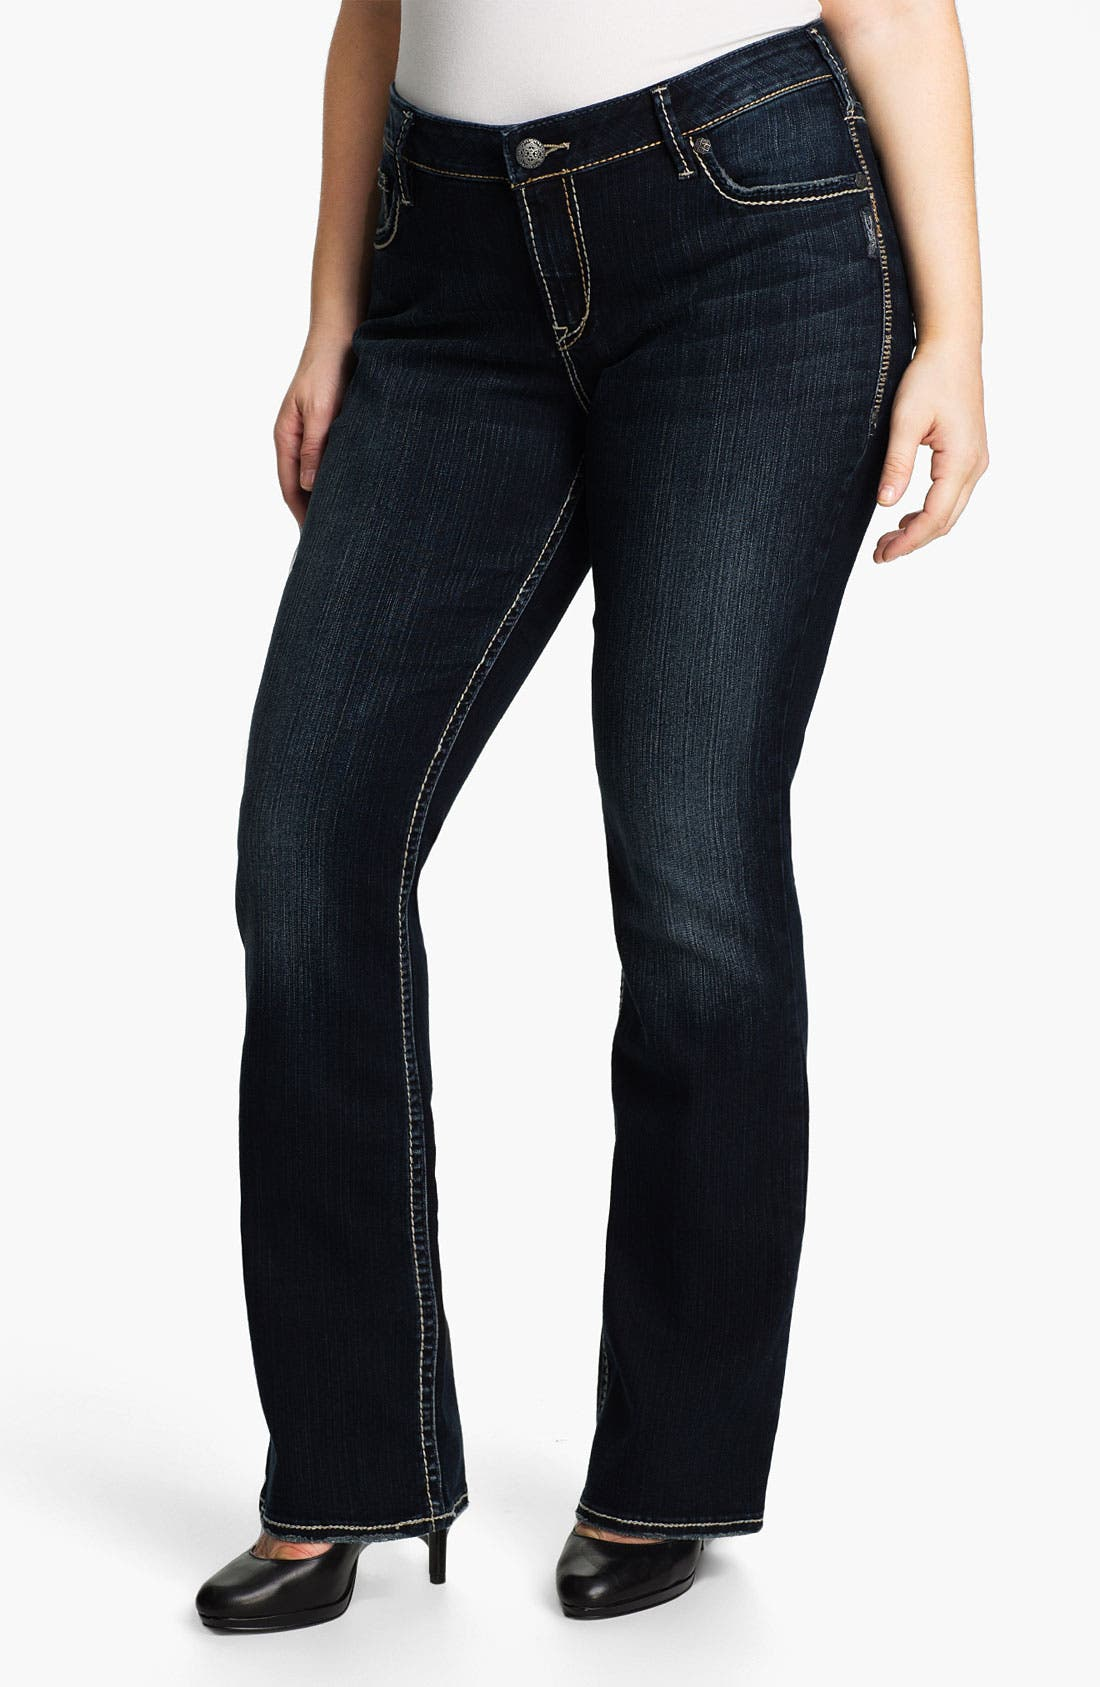 Alternate Image 1 Selected - Silver Jeans Co. 'Aiko' Bootcut Jeans (Plus)